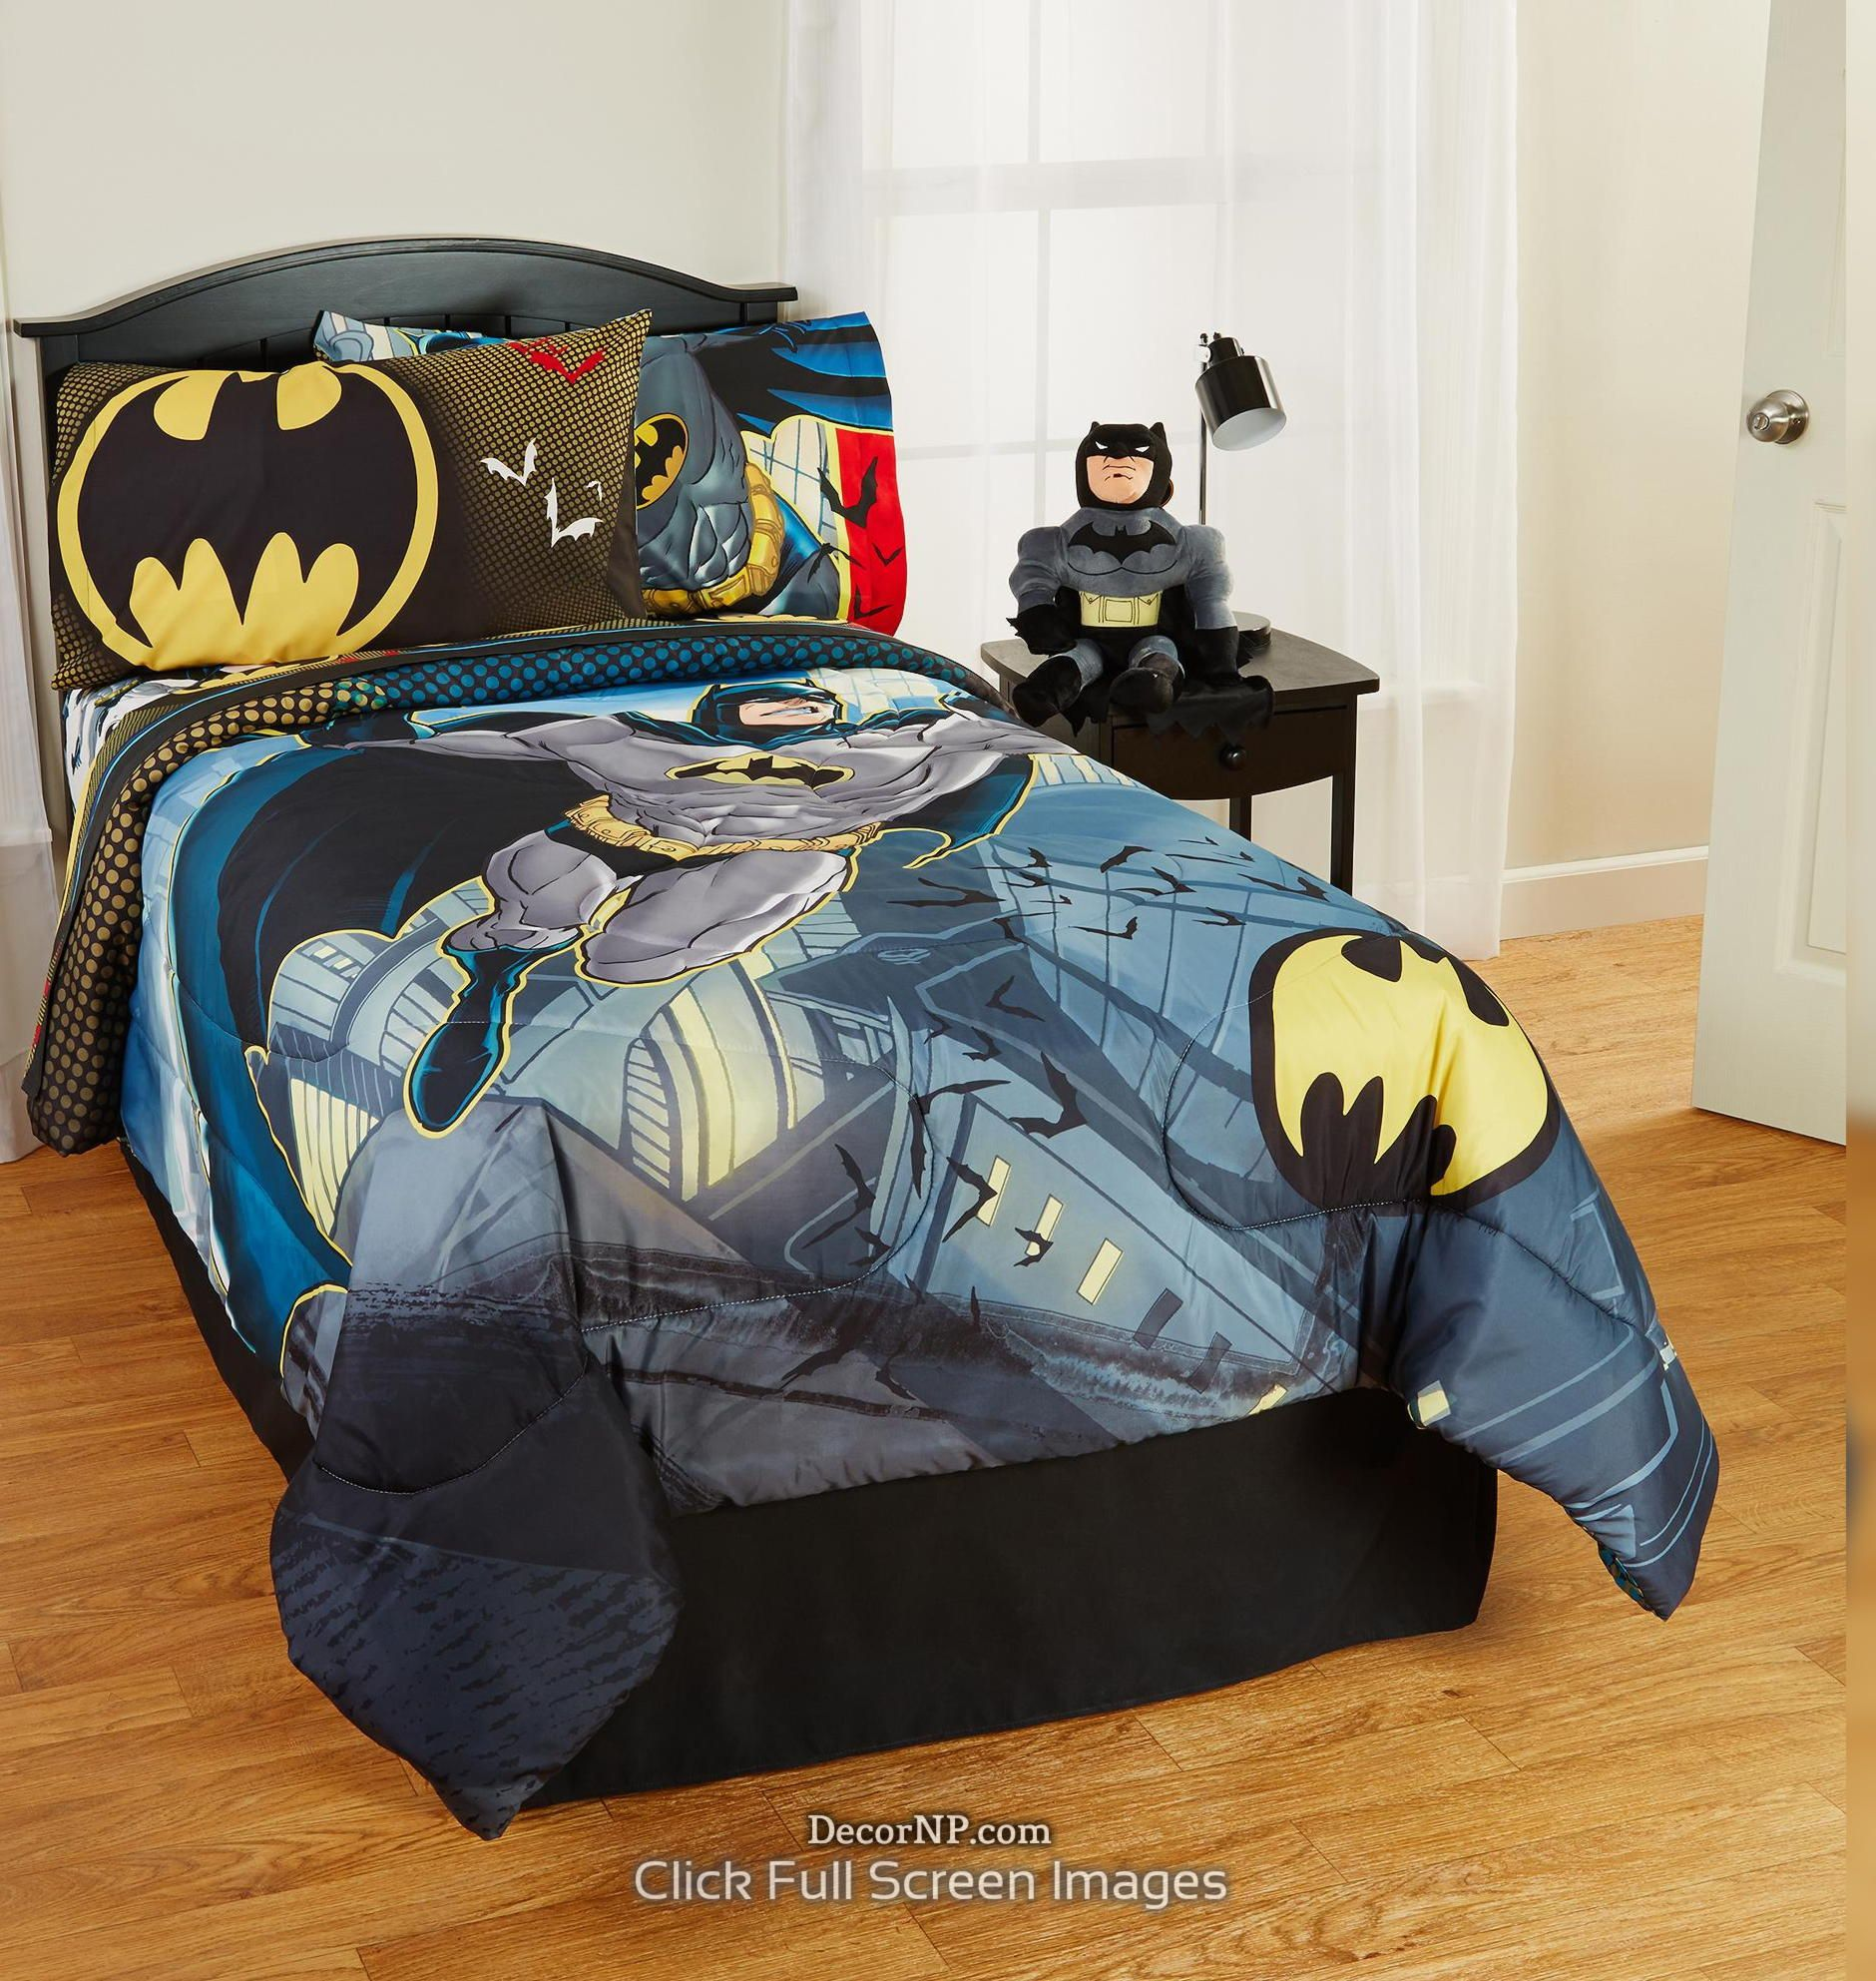 Batman Bedding For My Son S Room